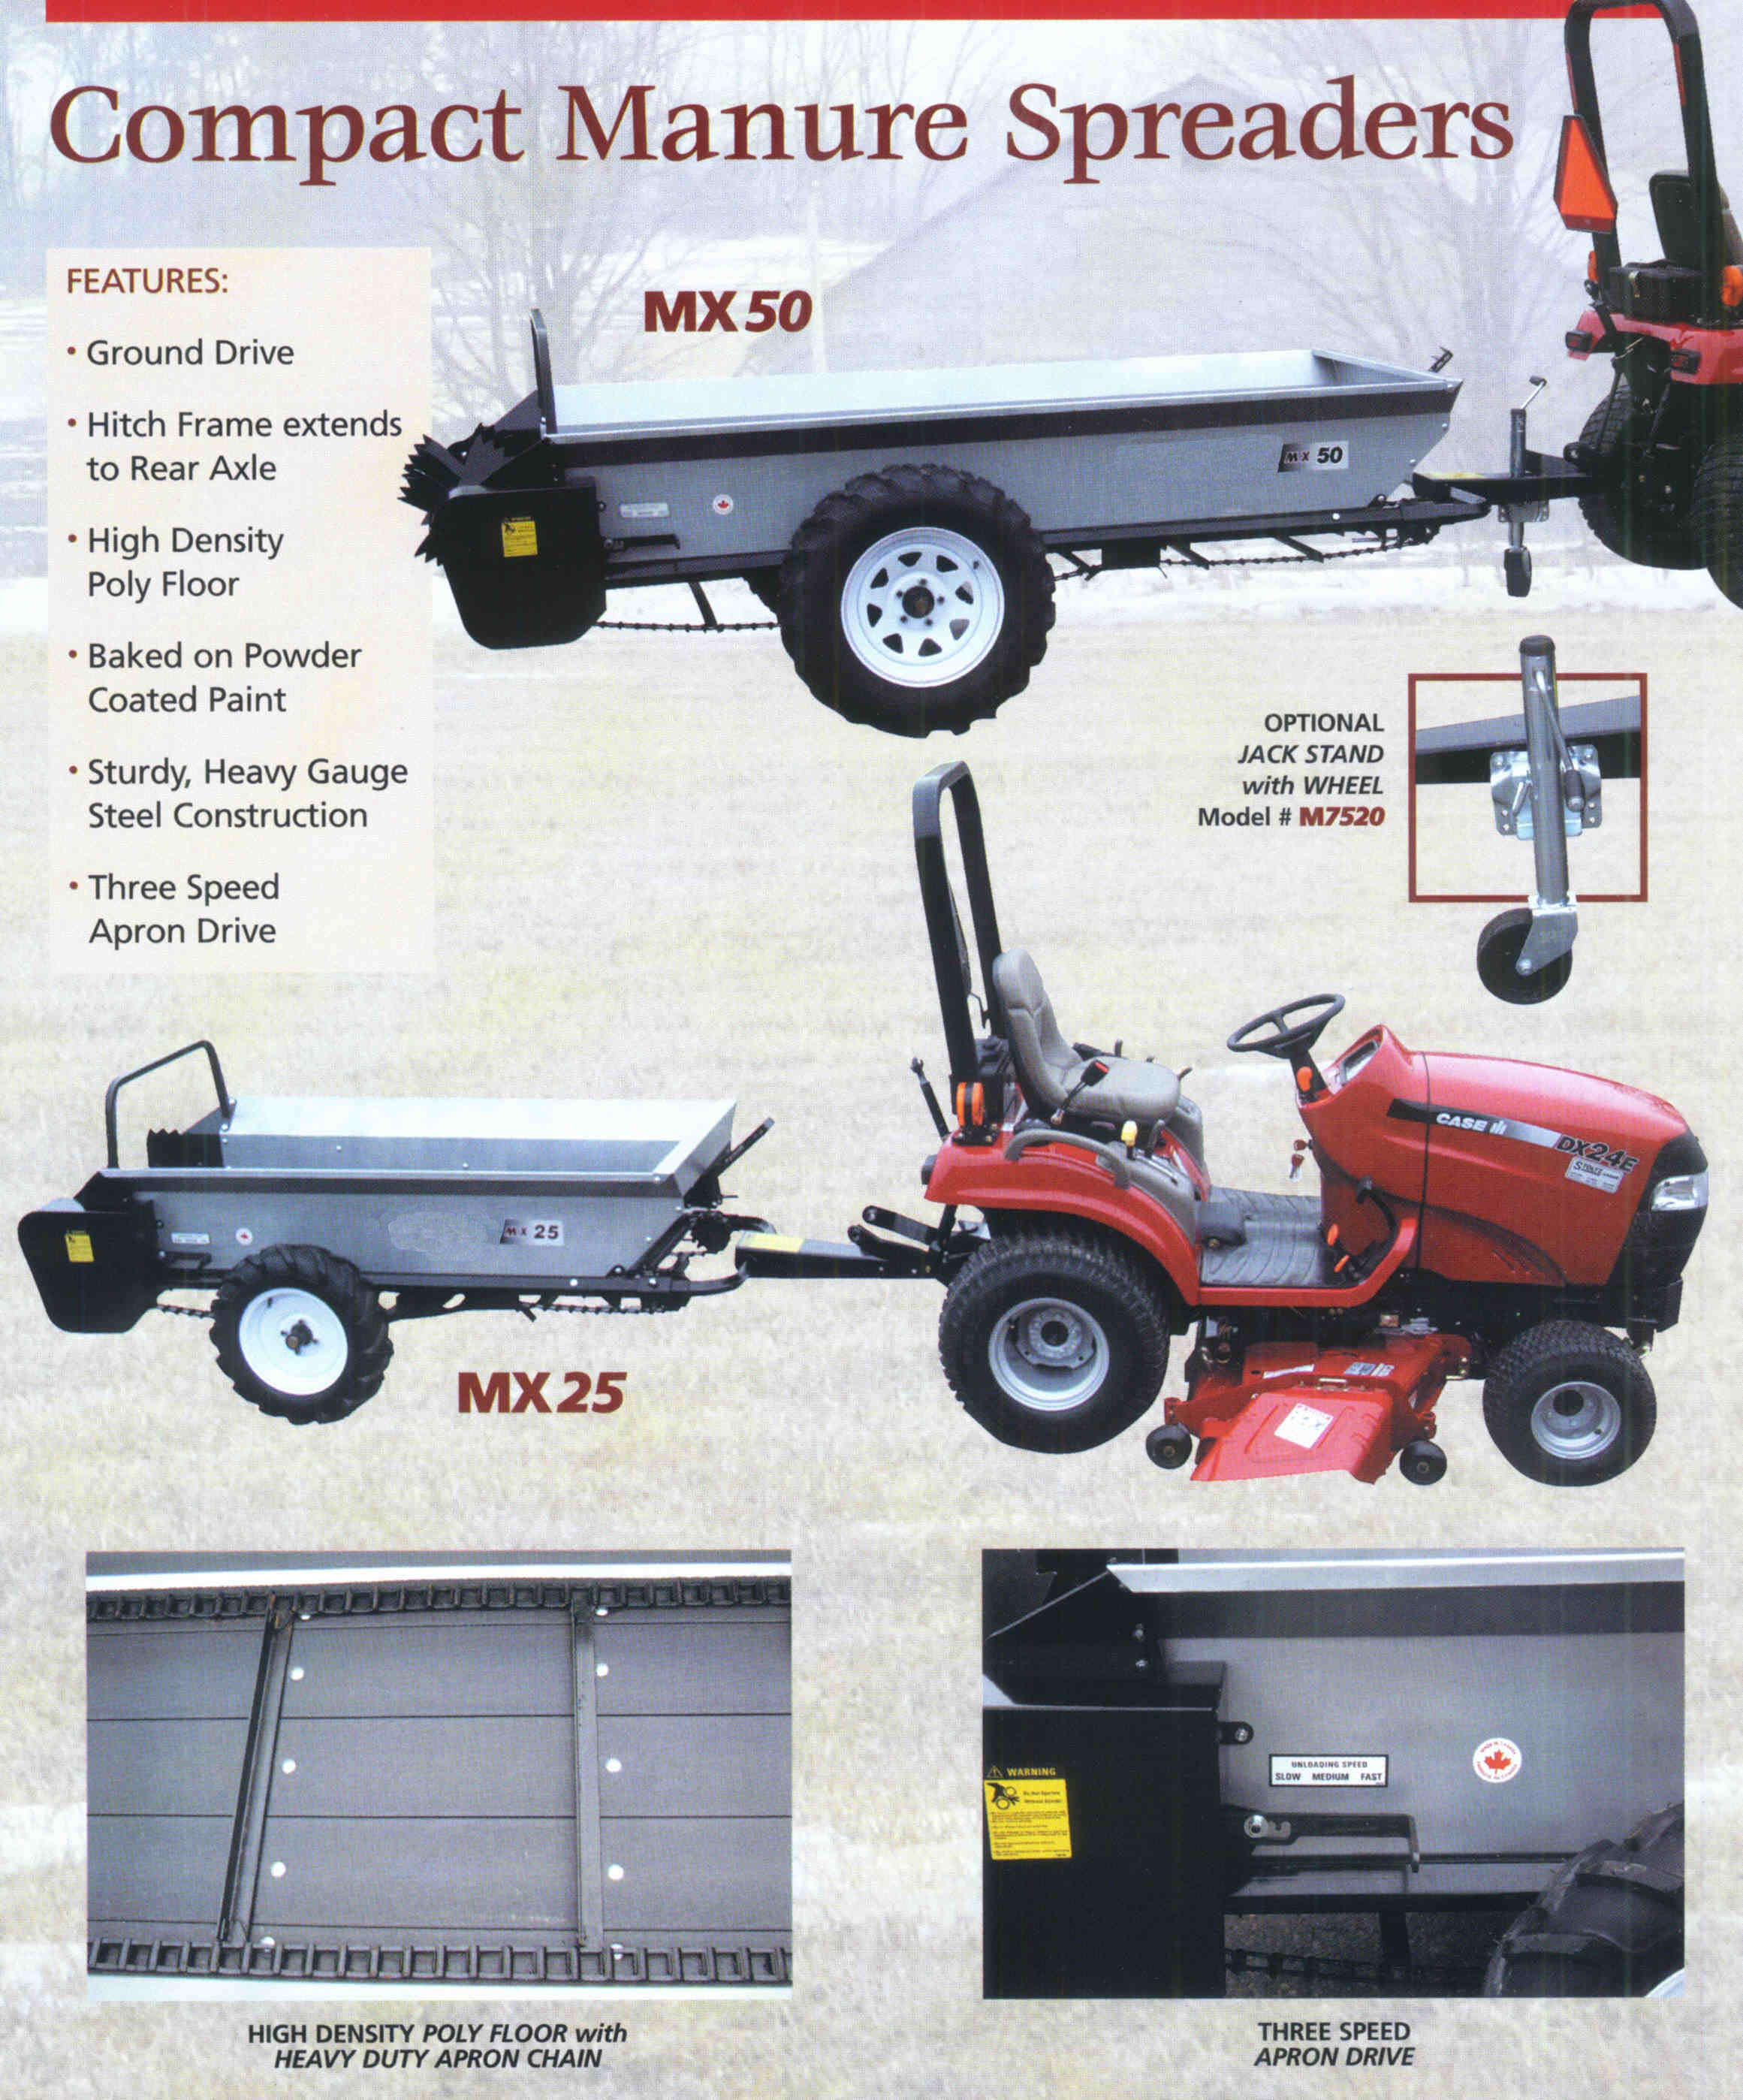 MX Series Compact Manure Spreaders